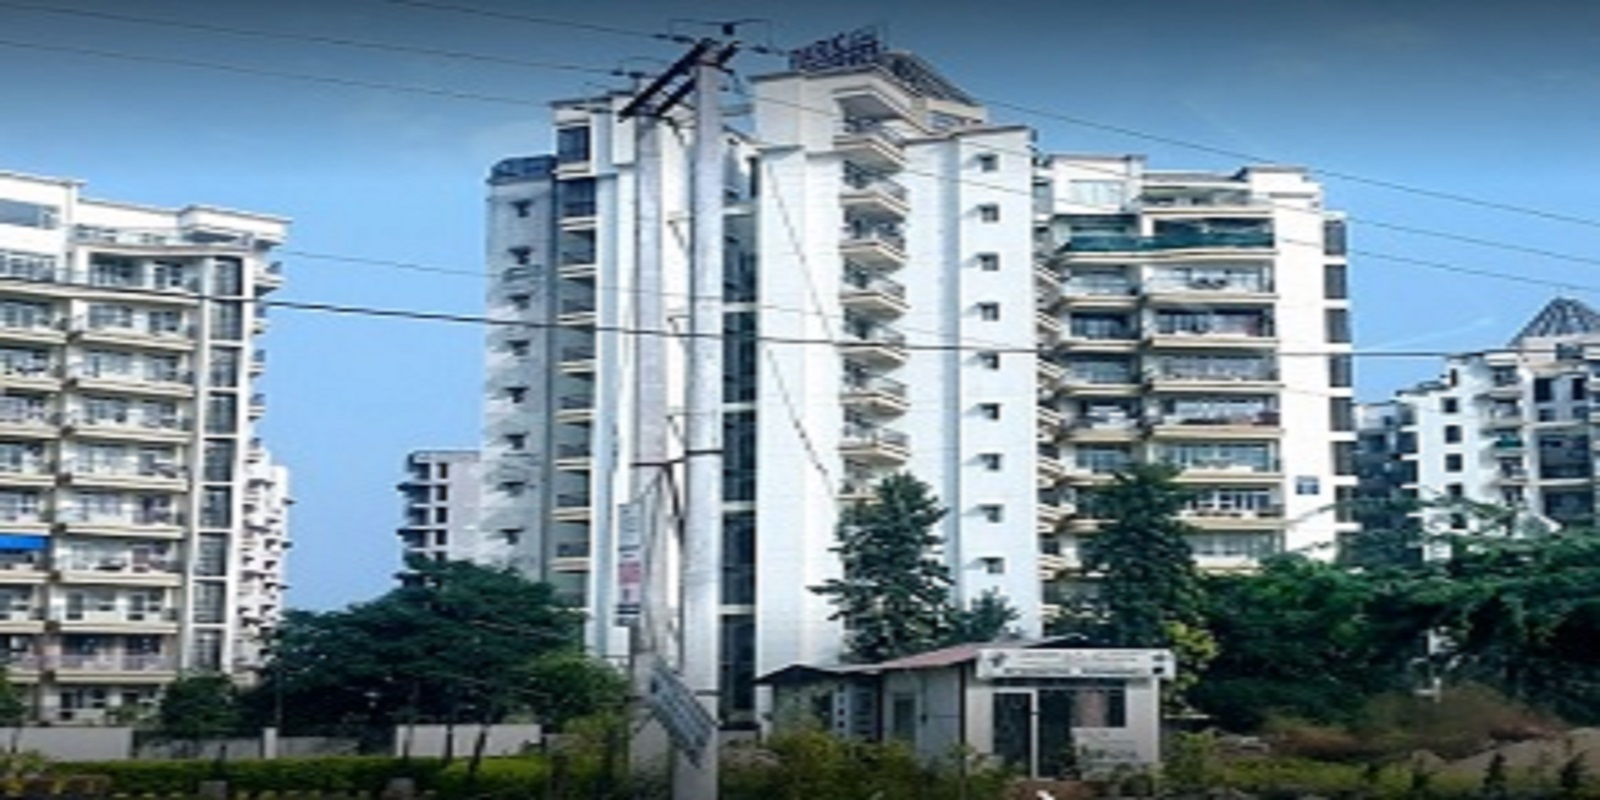 parker residency project project large image1